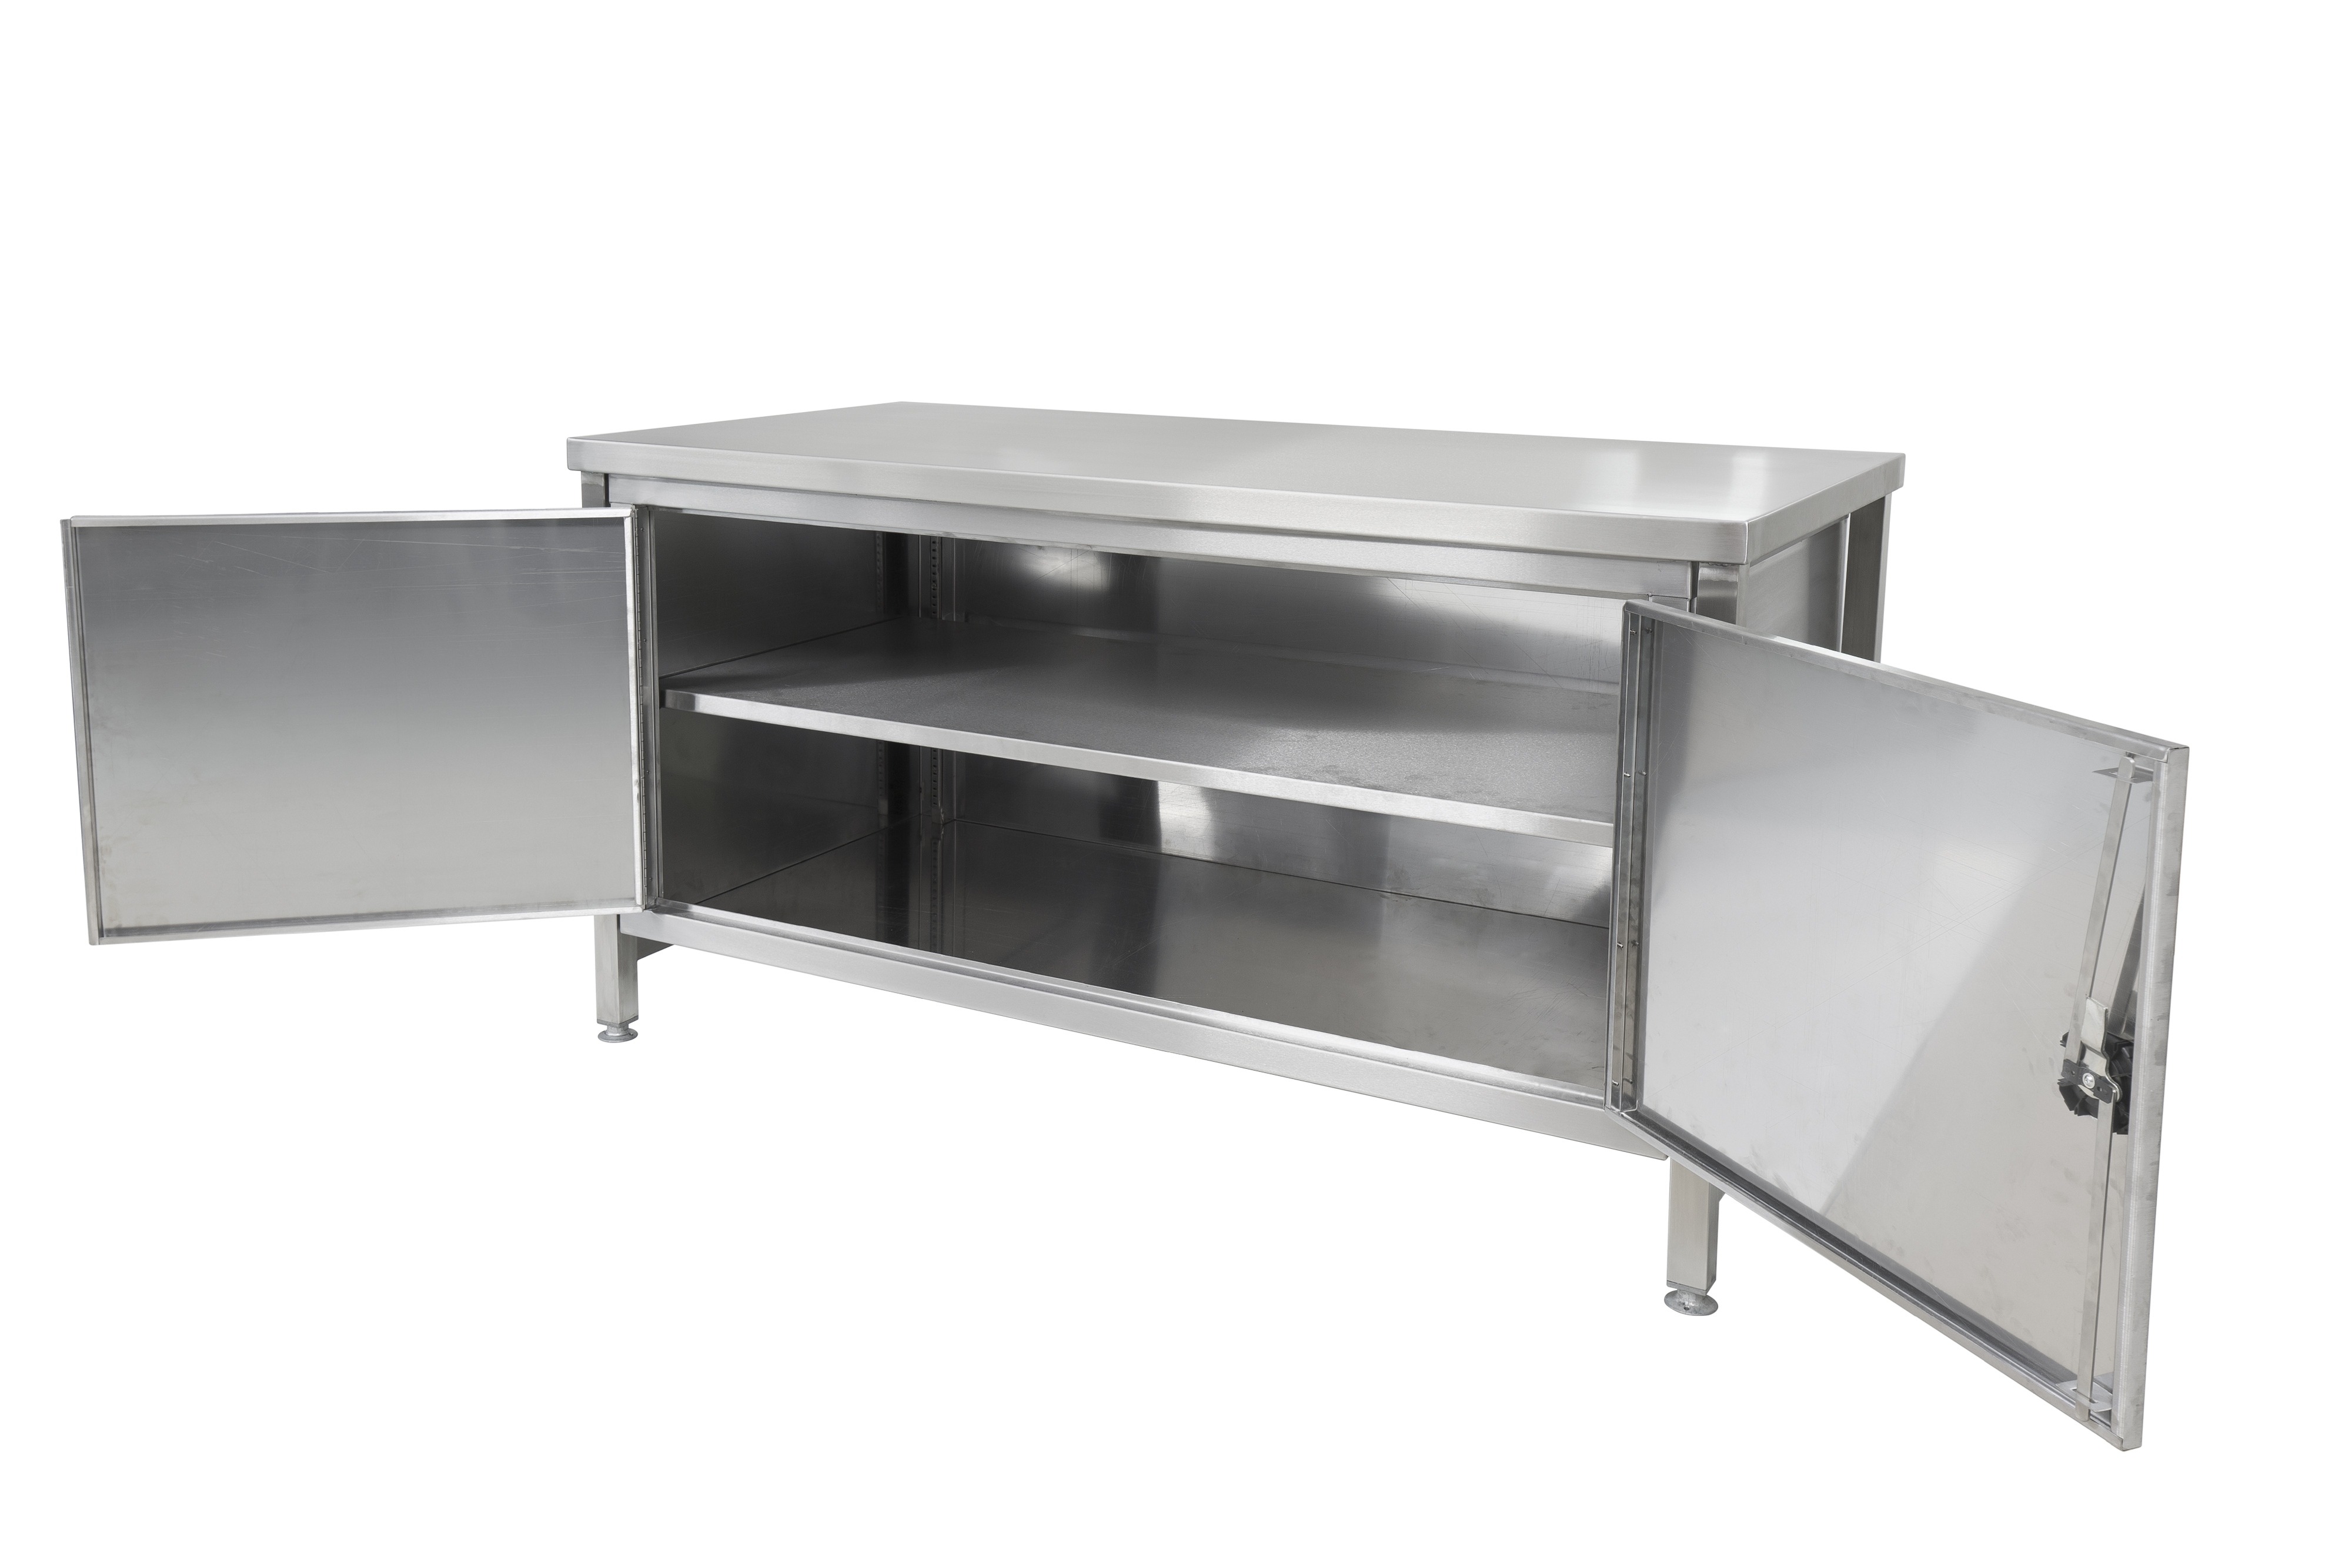 SSCUP1575_-_1500mm_x_750mm_SS_Workbench_with_full_open_cupboard